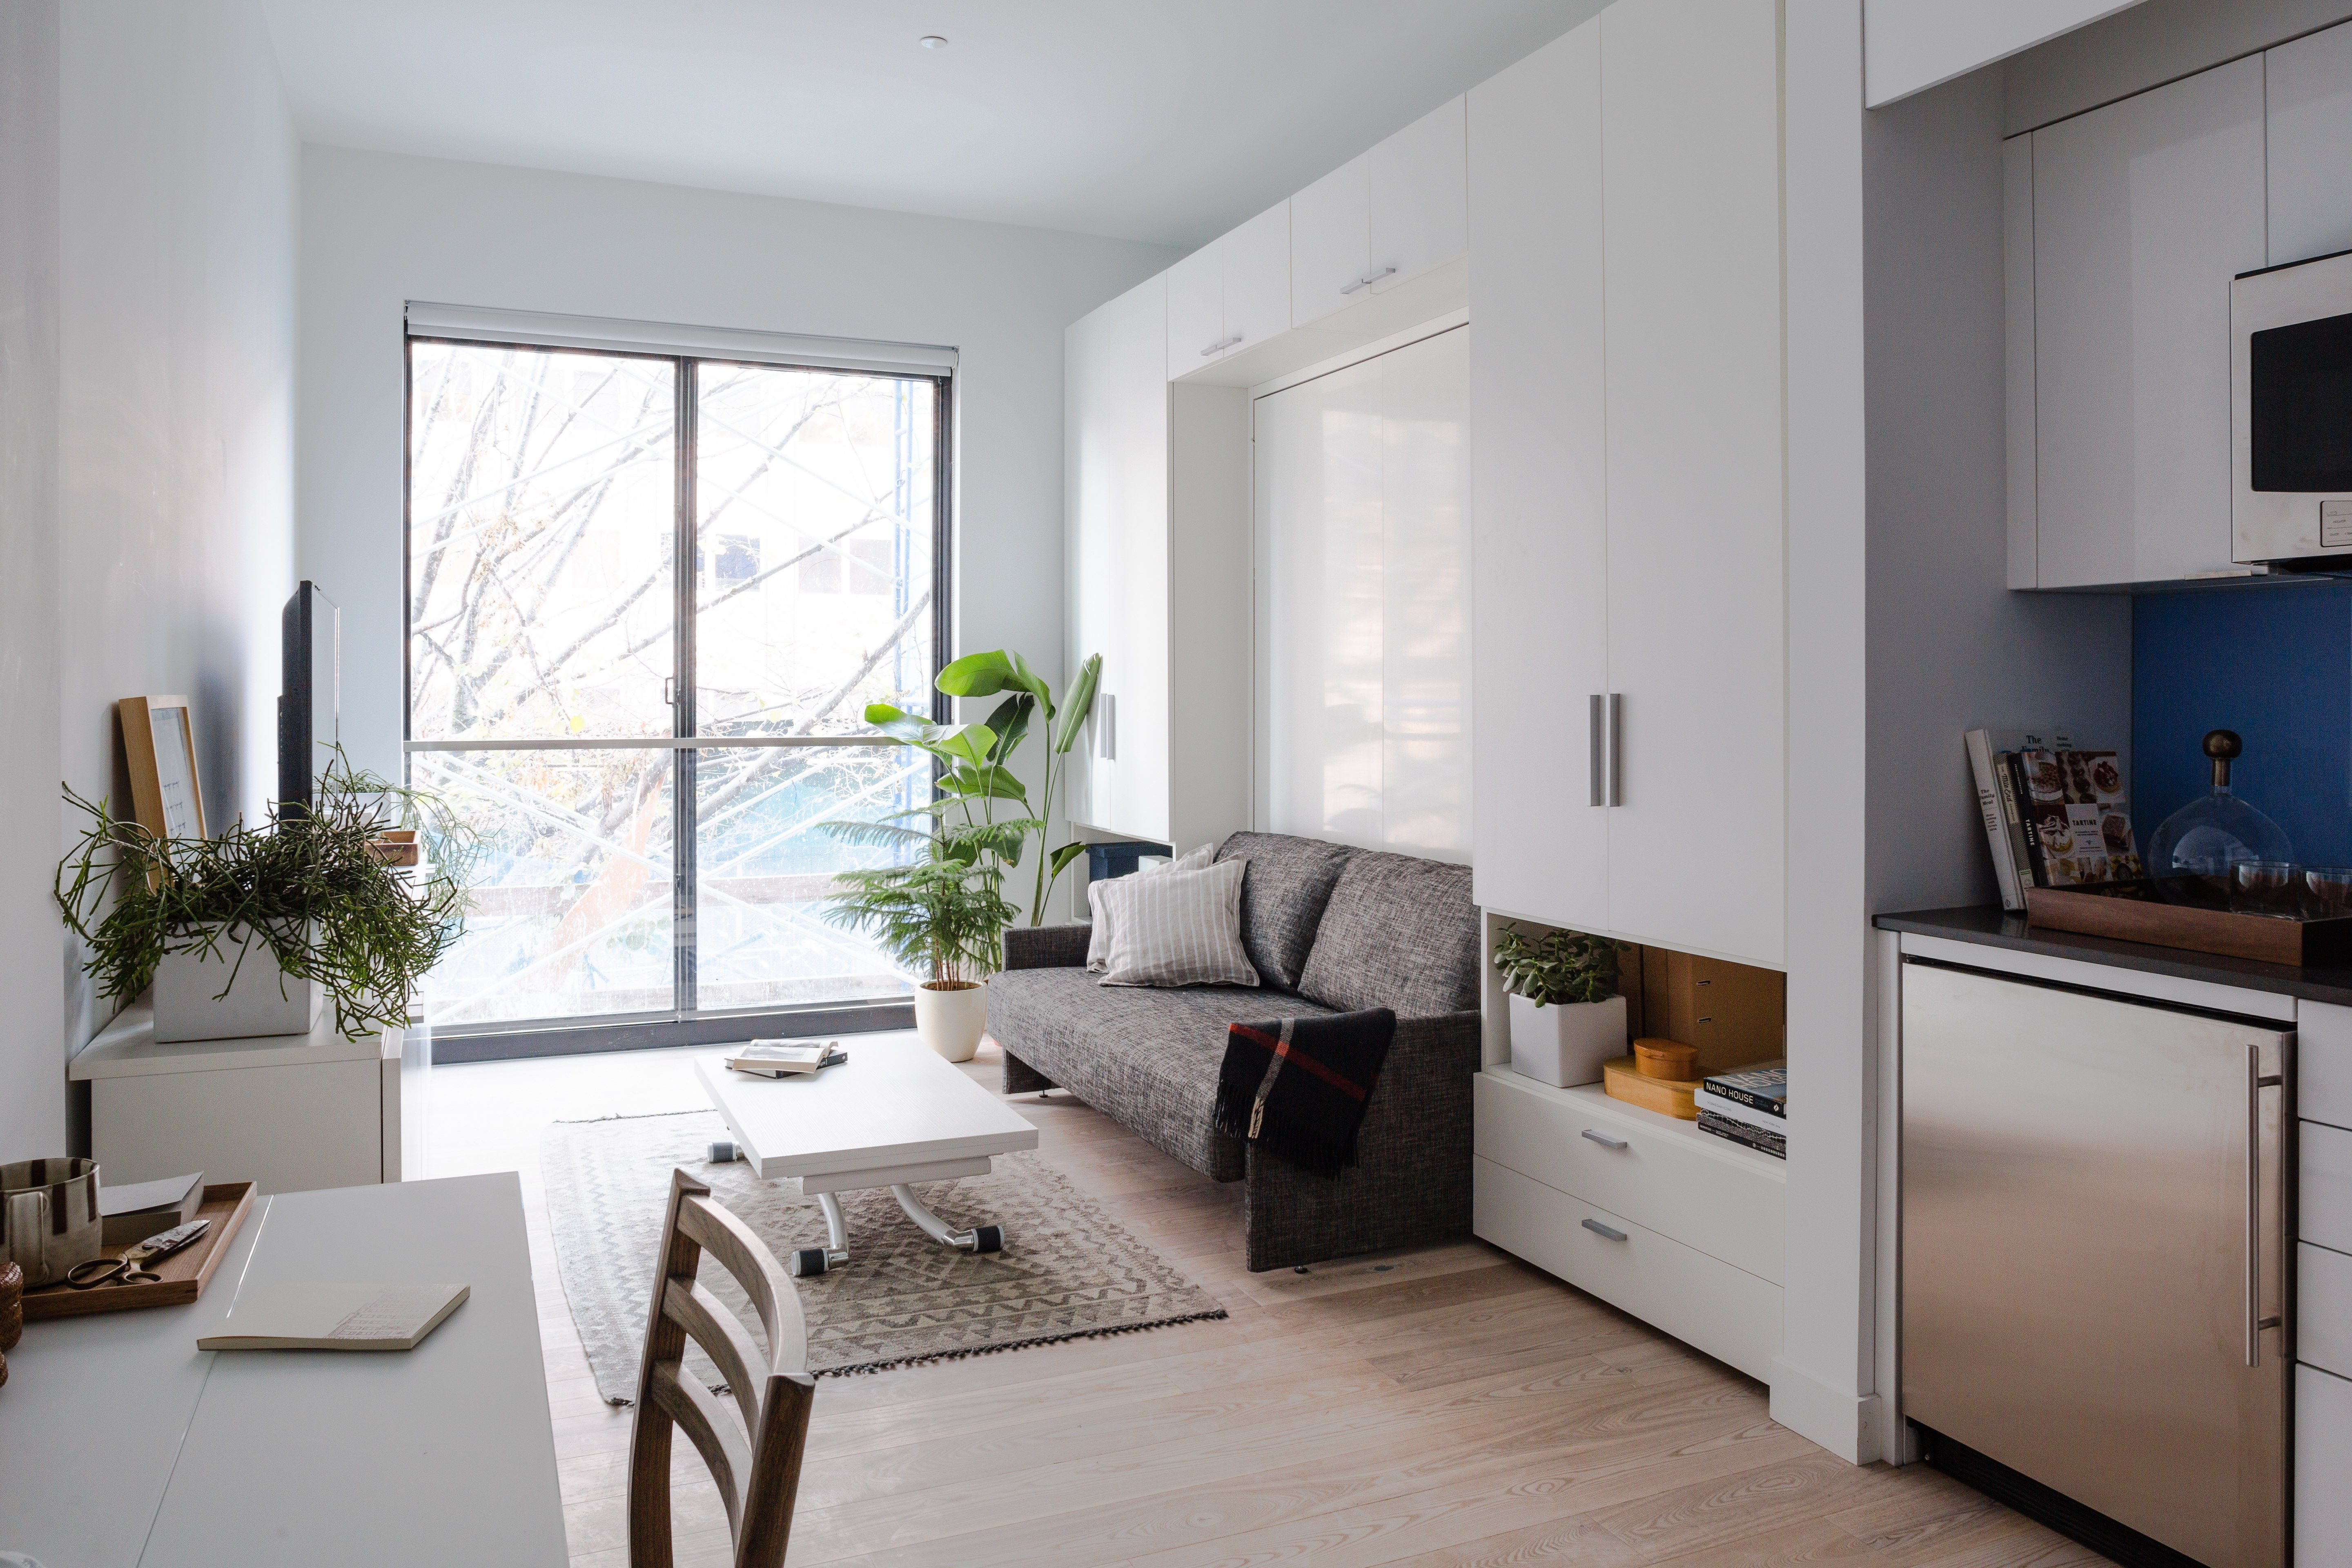 Small Space Living In Microapartments Nyc  Small Space Living Magnificent Small Space Living Room Design Inspiration